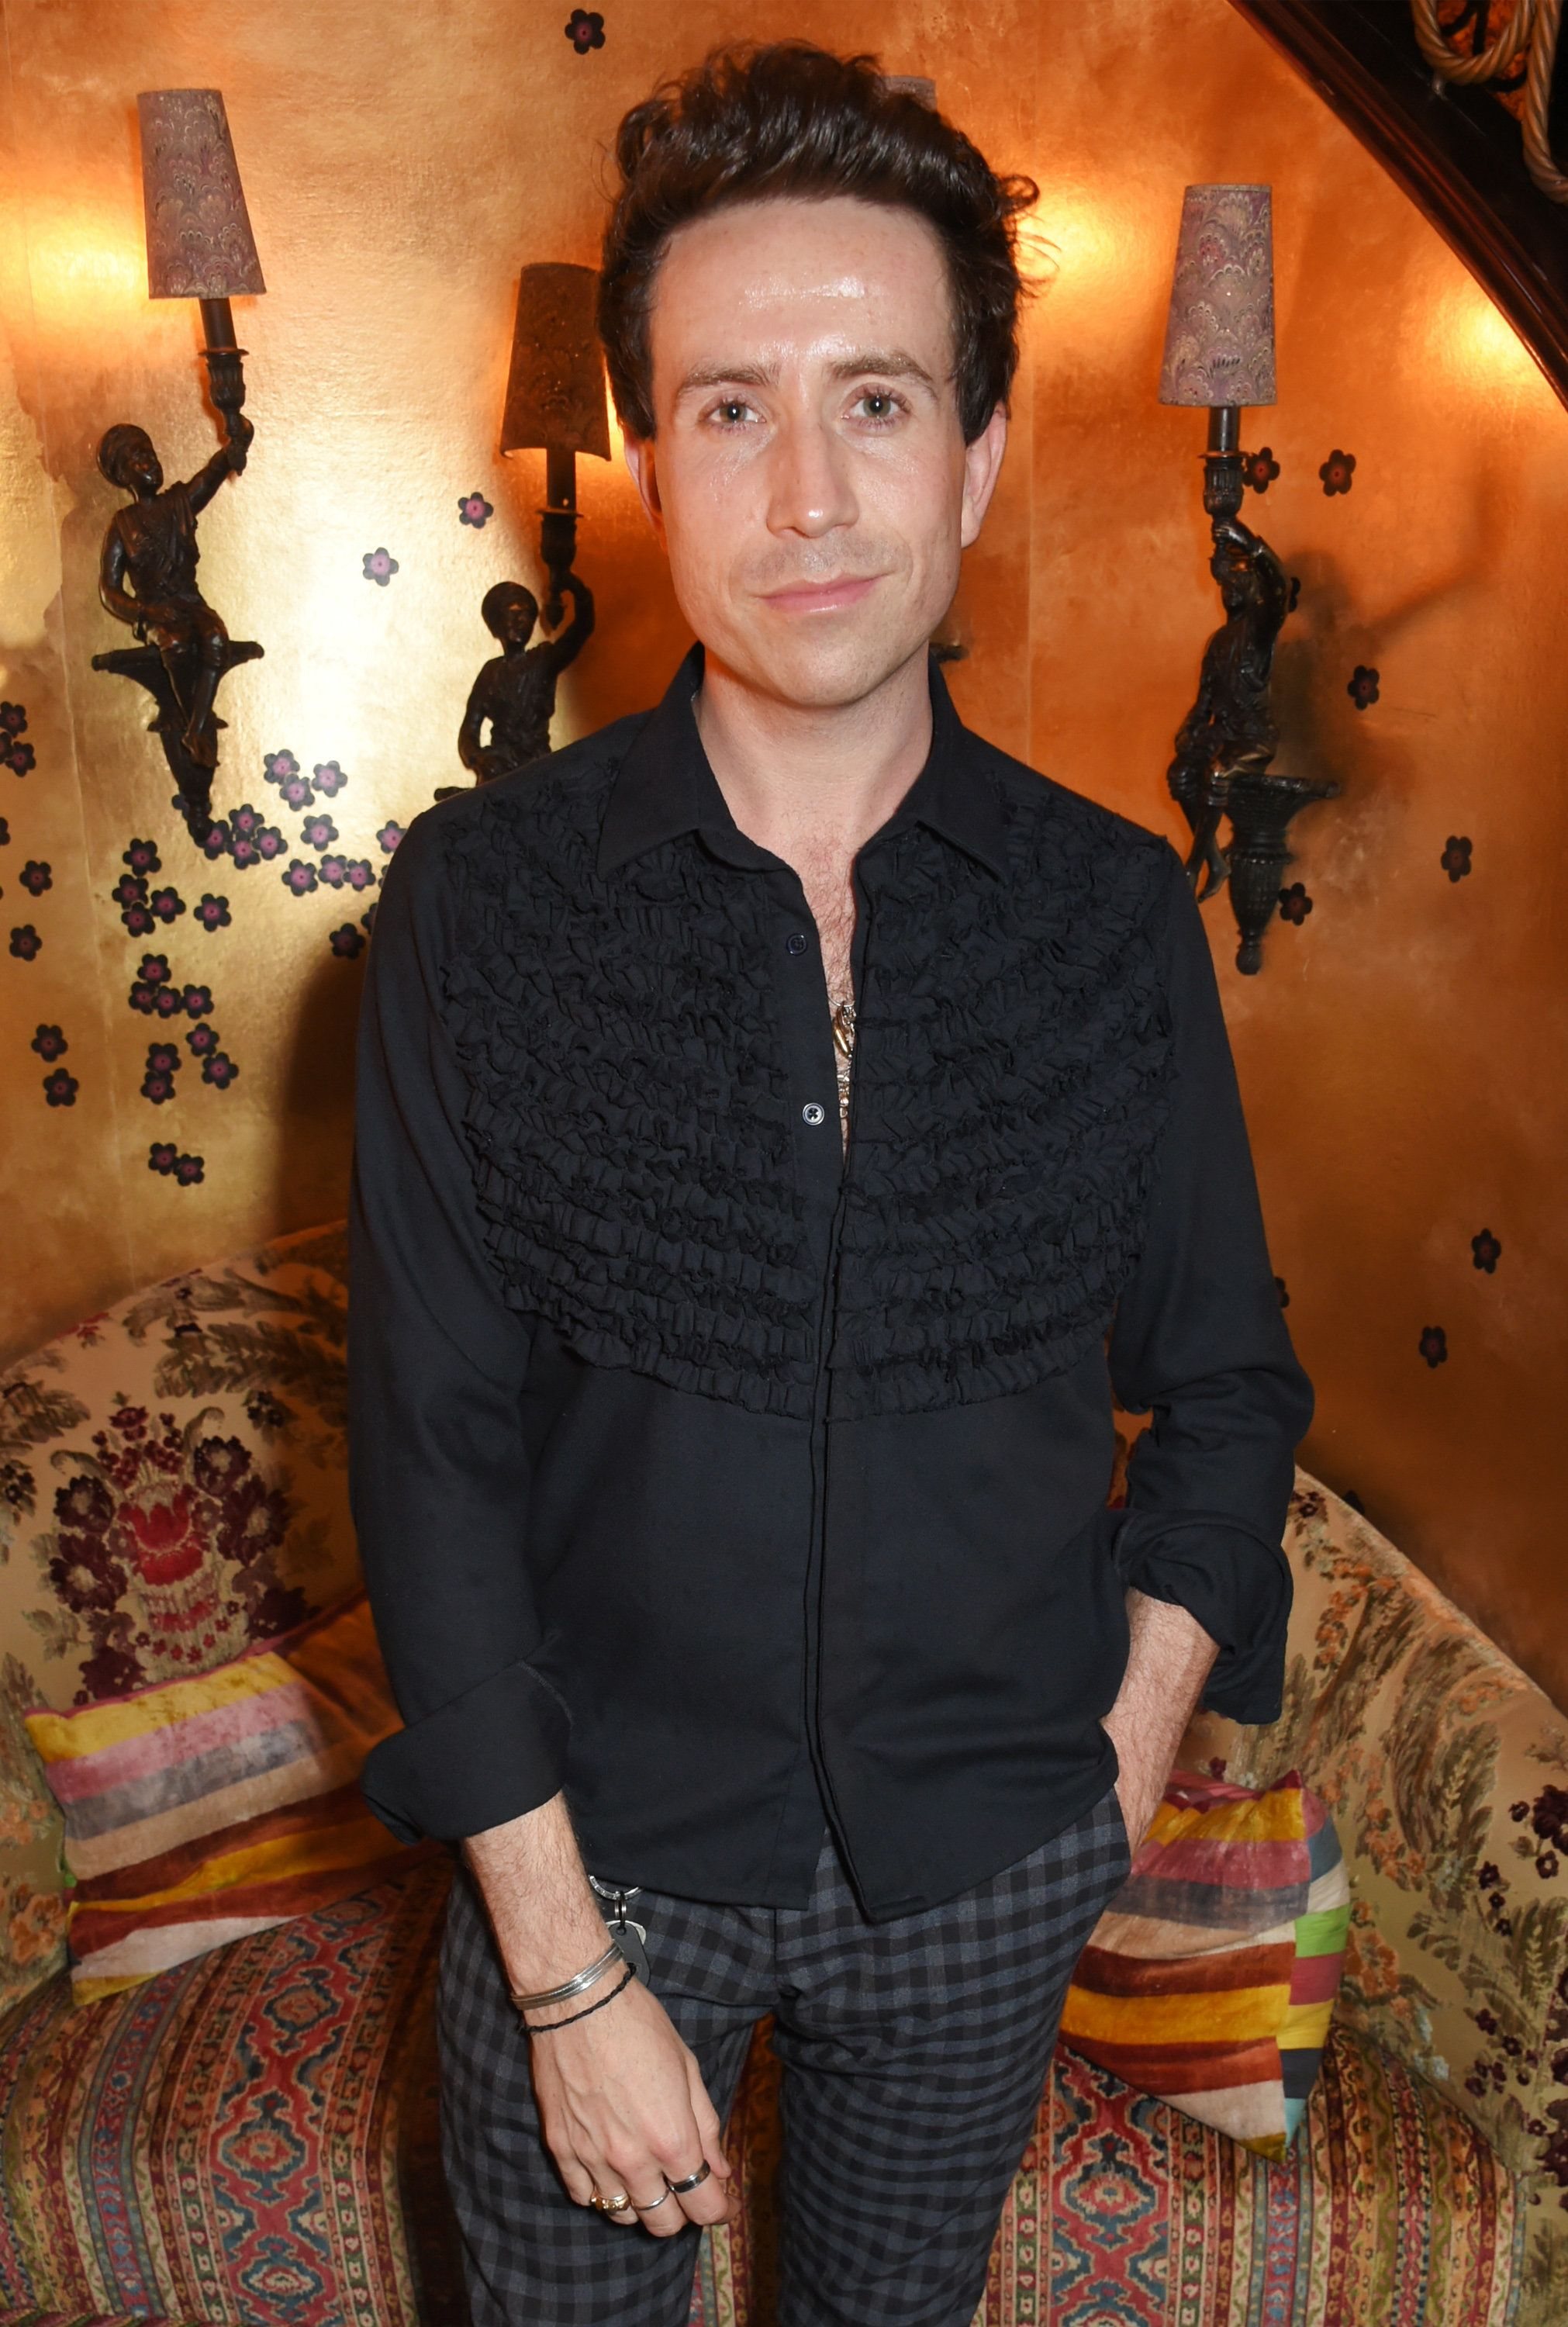 Nick Grimshaw Might Want To Avoid Seeing The Latest Radio 1 Listening